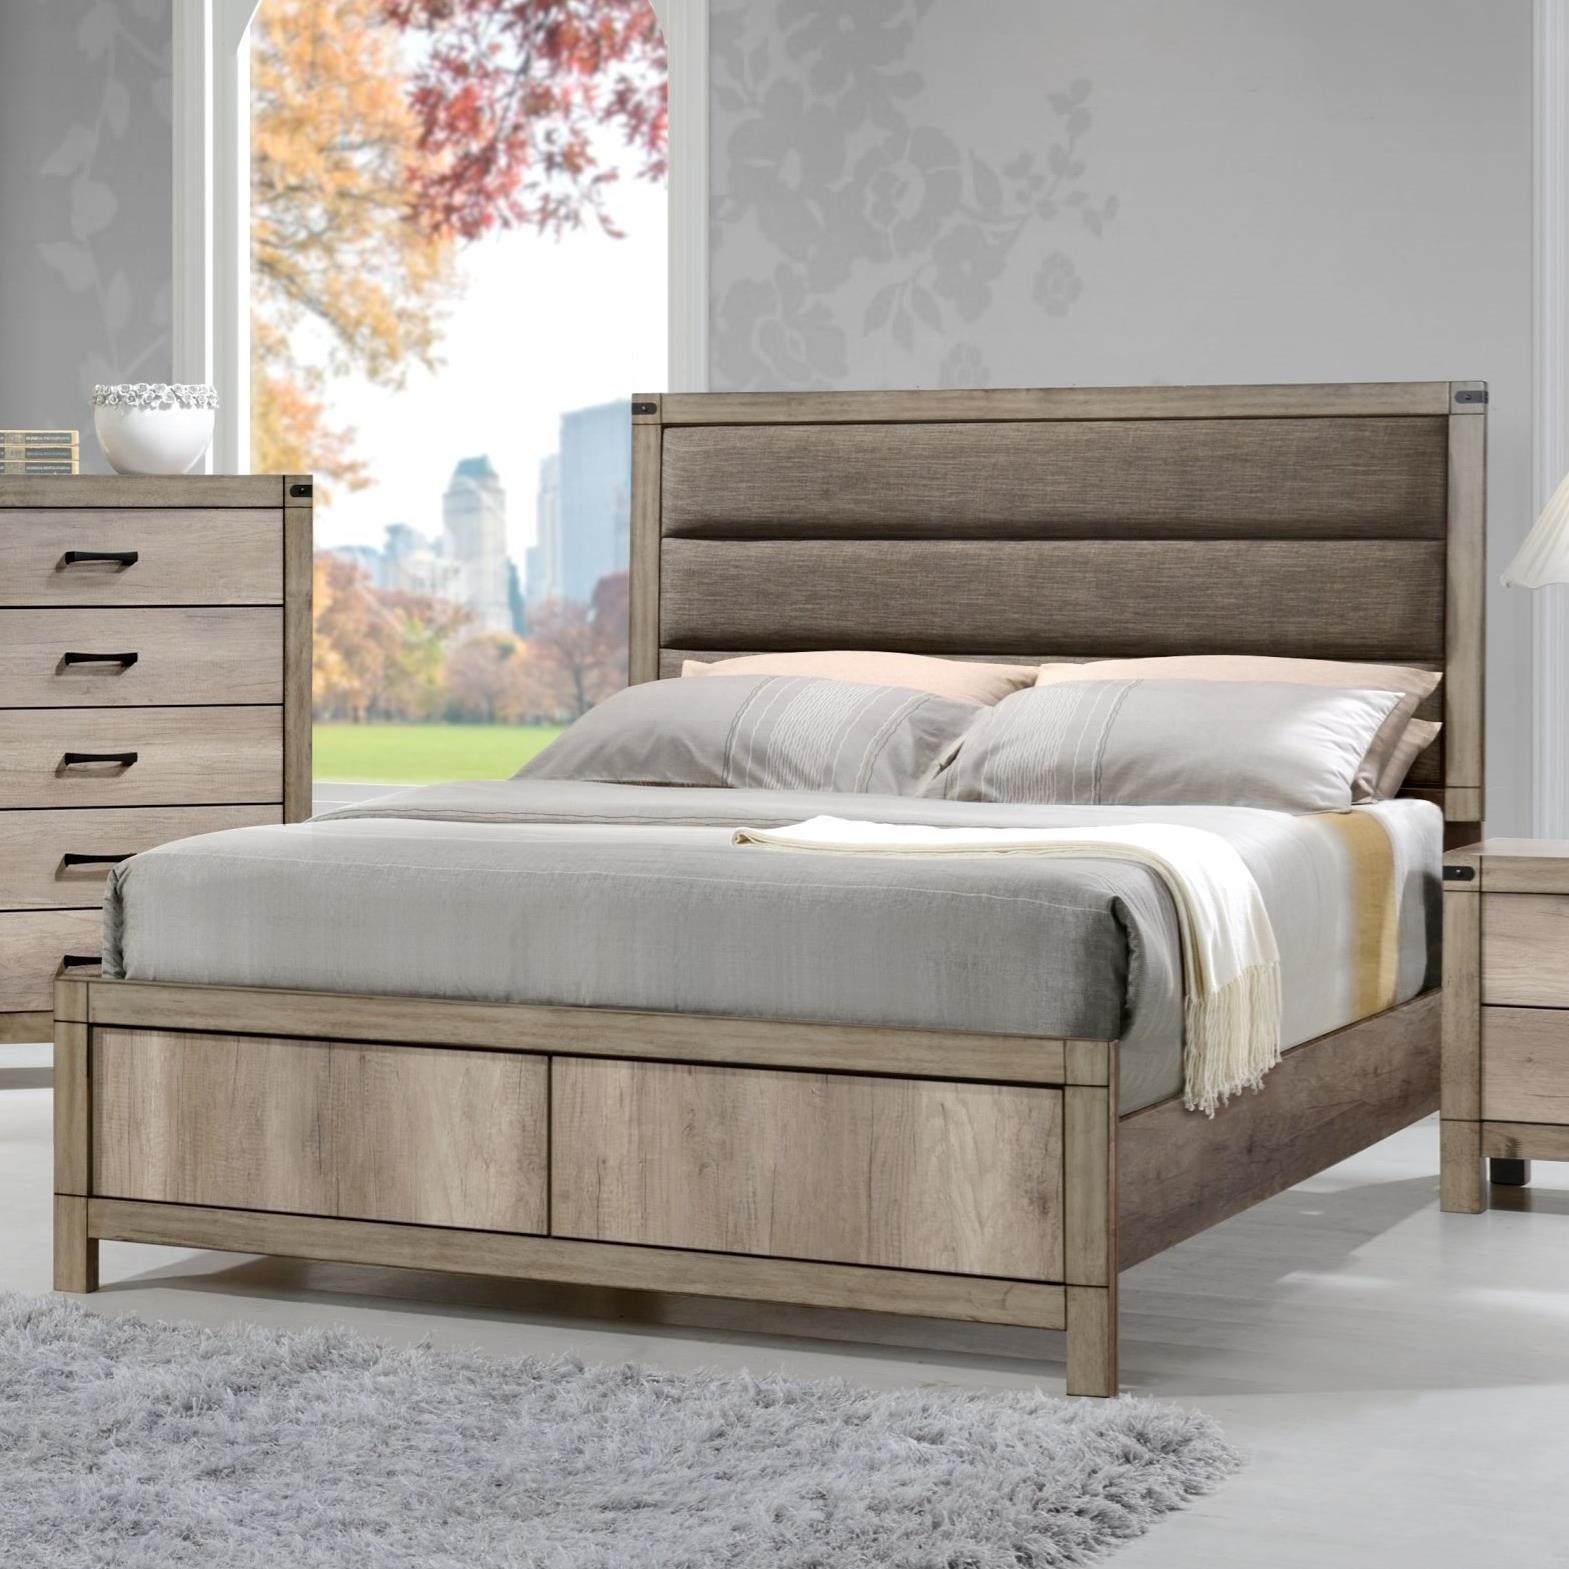 Futuristic Low Profile Bed Frame Plans Free